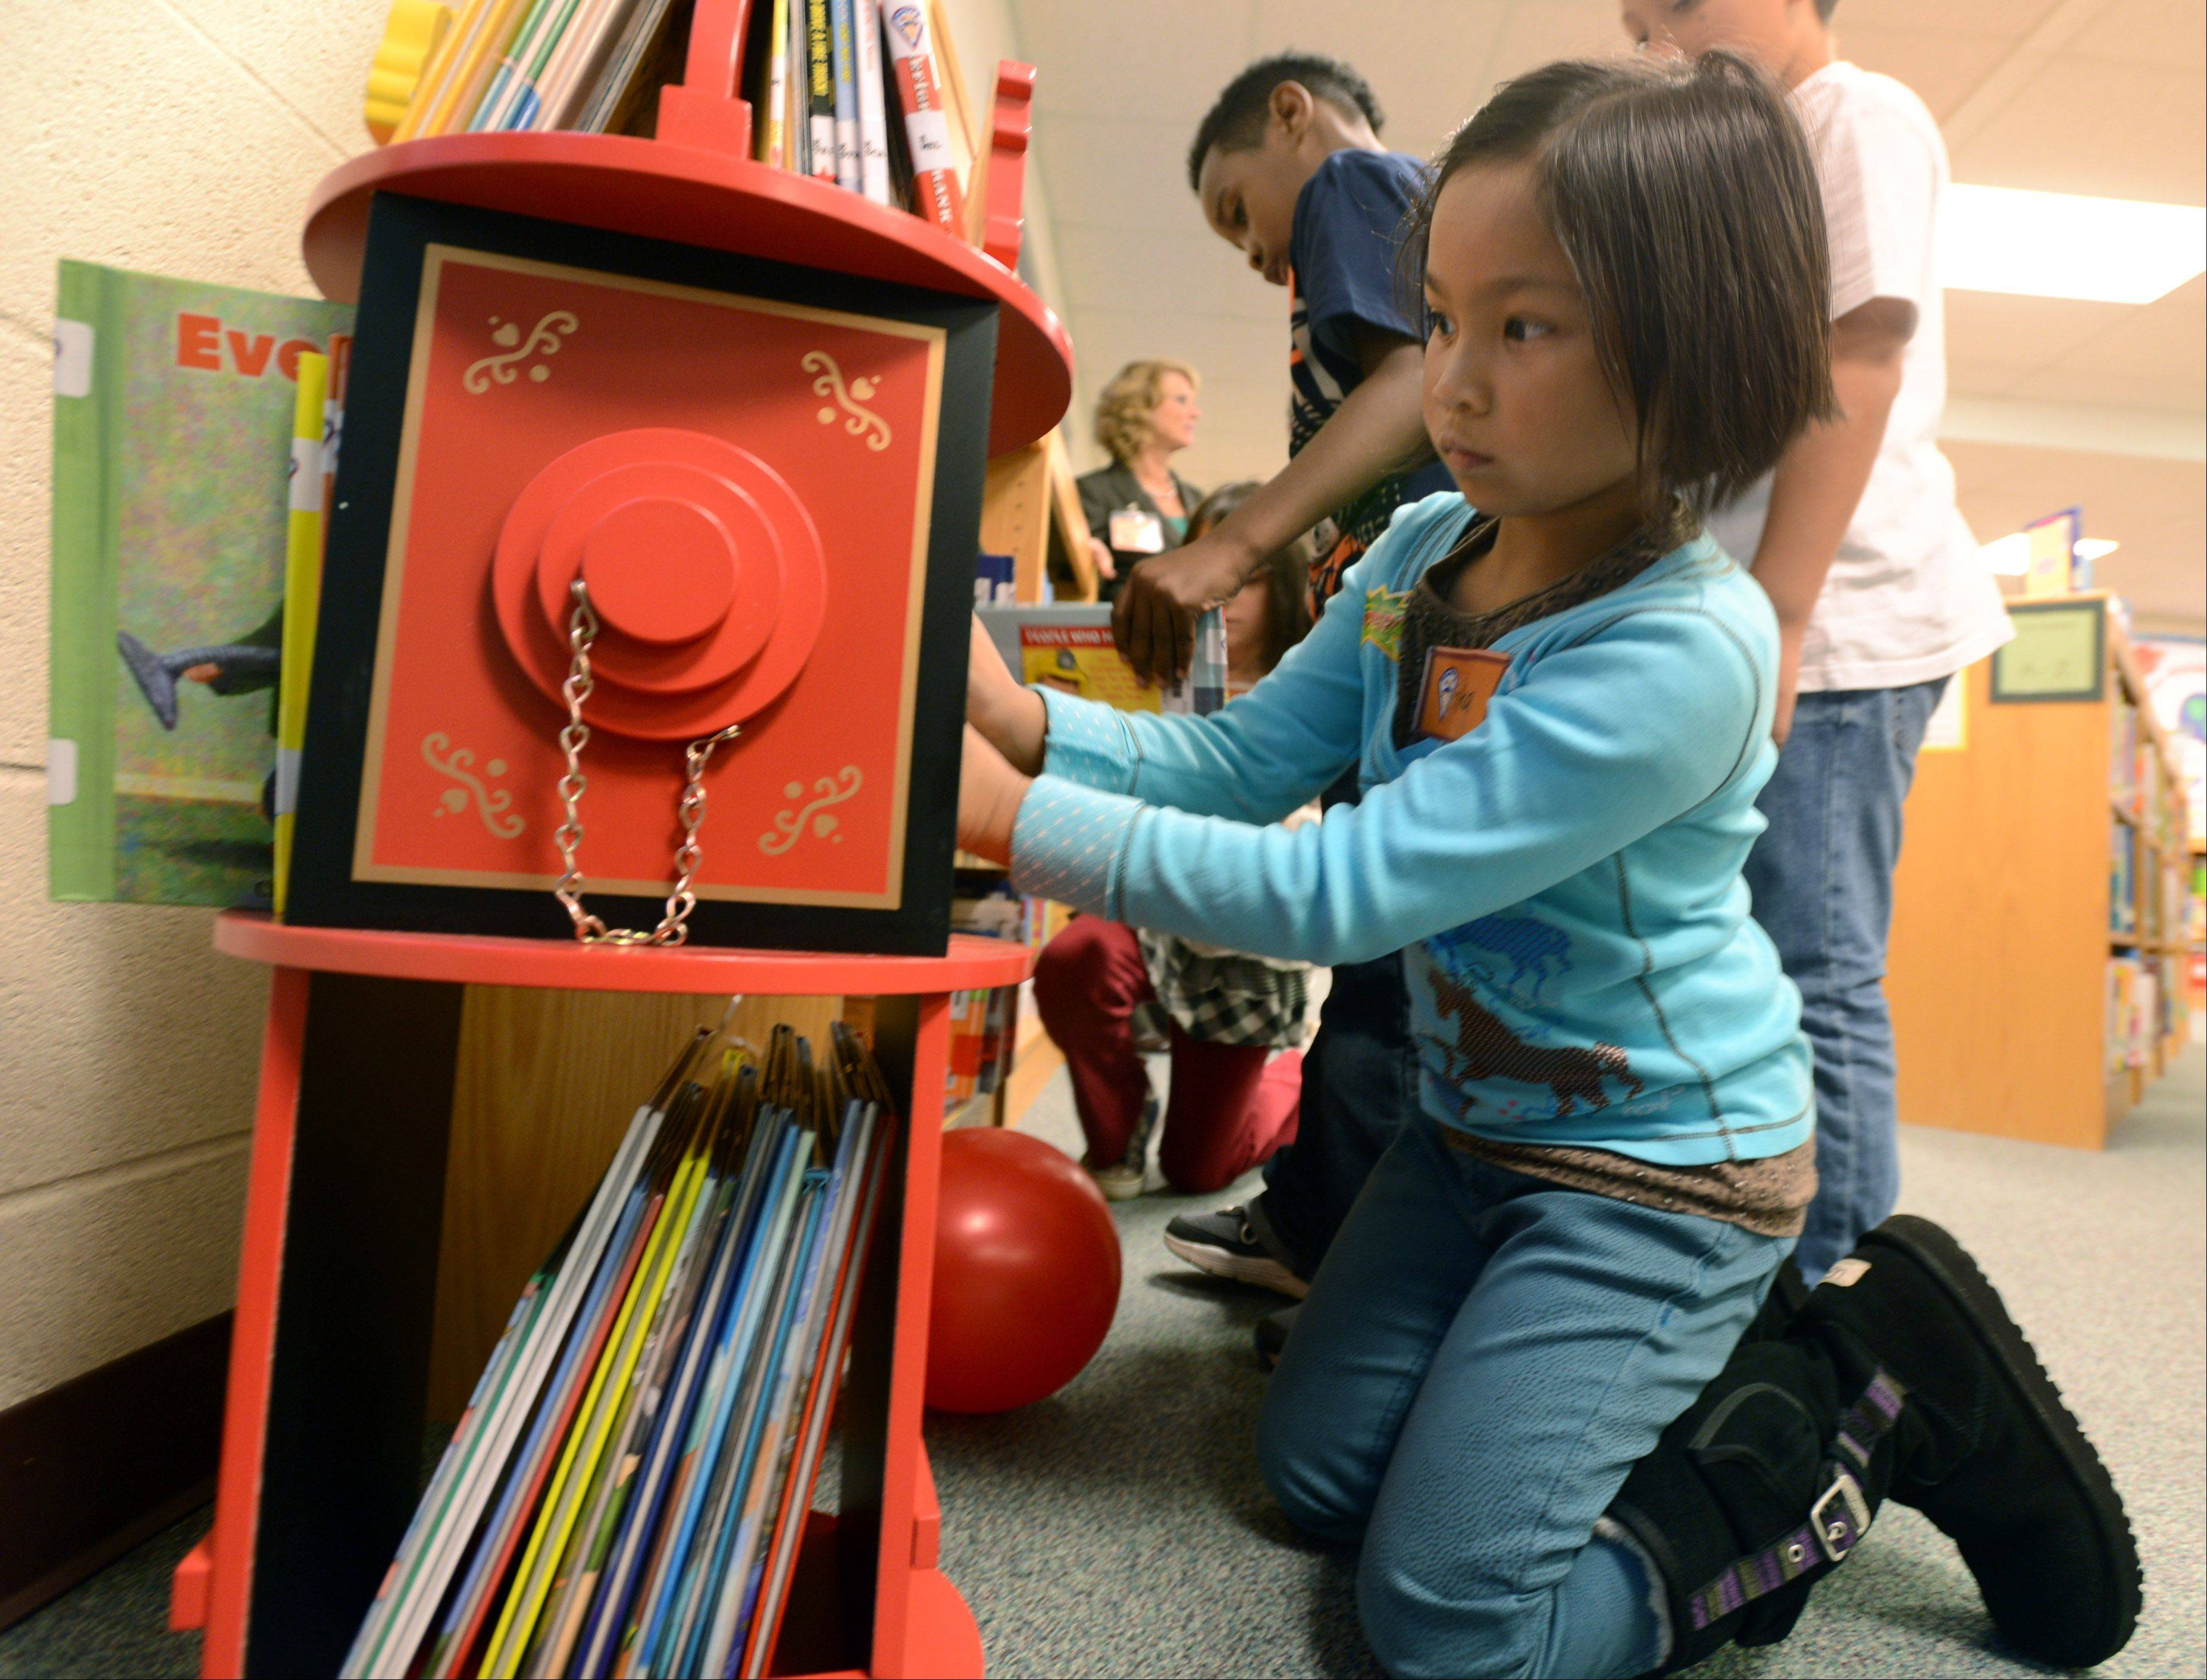 Spaulding Elementary School second-grader Erika Relayson looks over books on a fire hydrant shelf Wednesday after the display was unveiled by local fire and village officials.